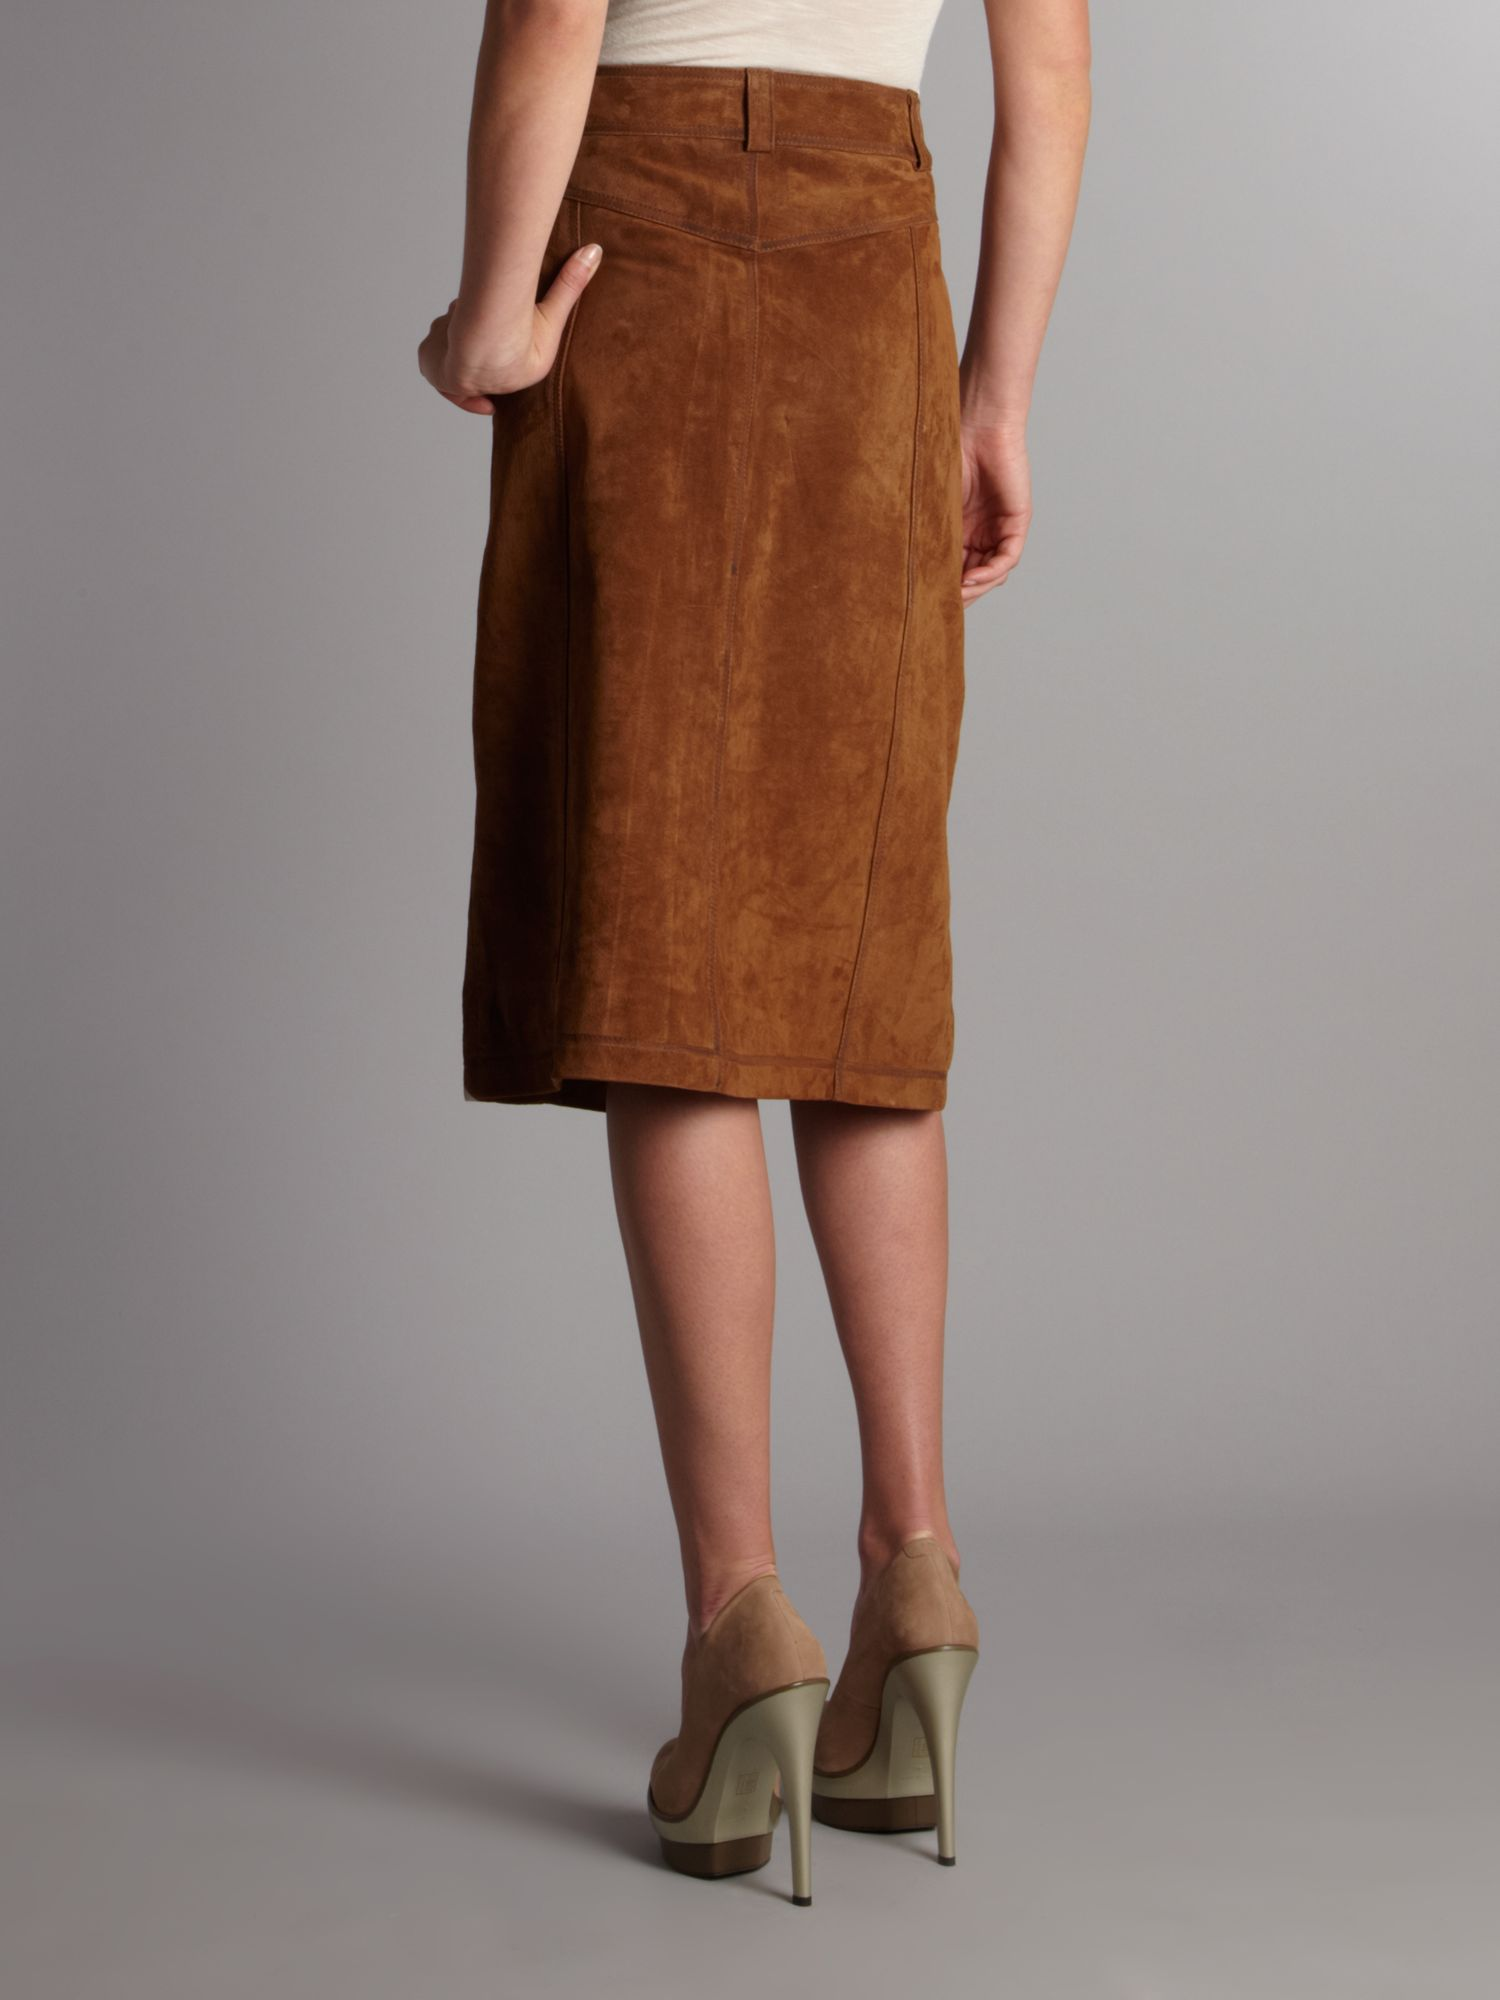 Linea weekend Suede Midi Skirt in Brown | Lyst